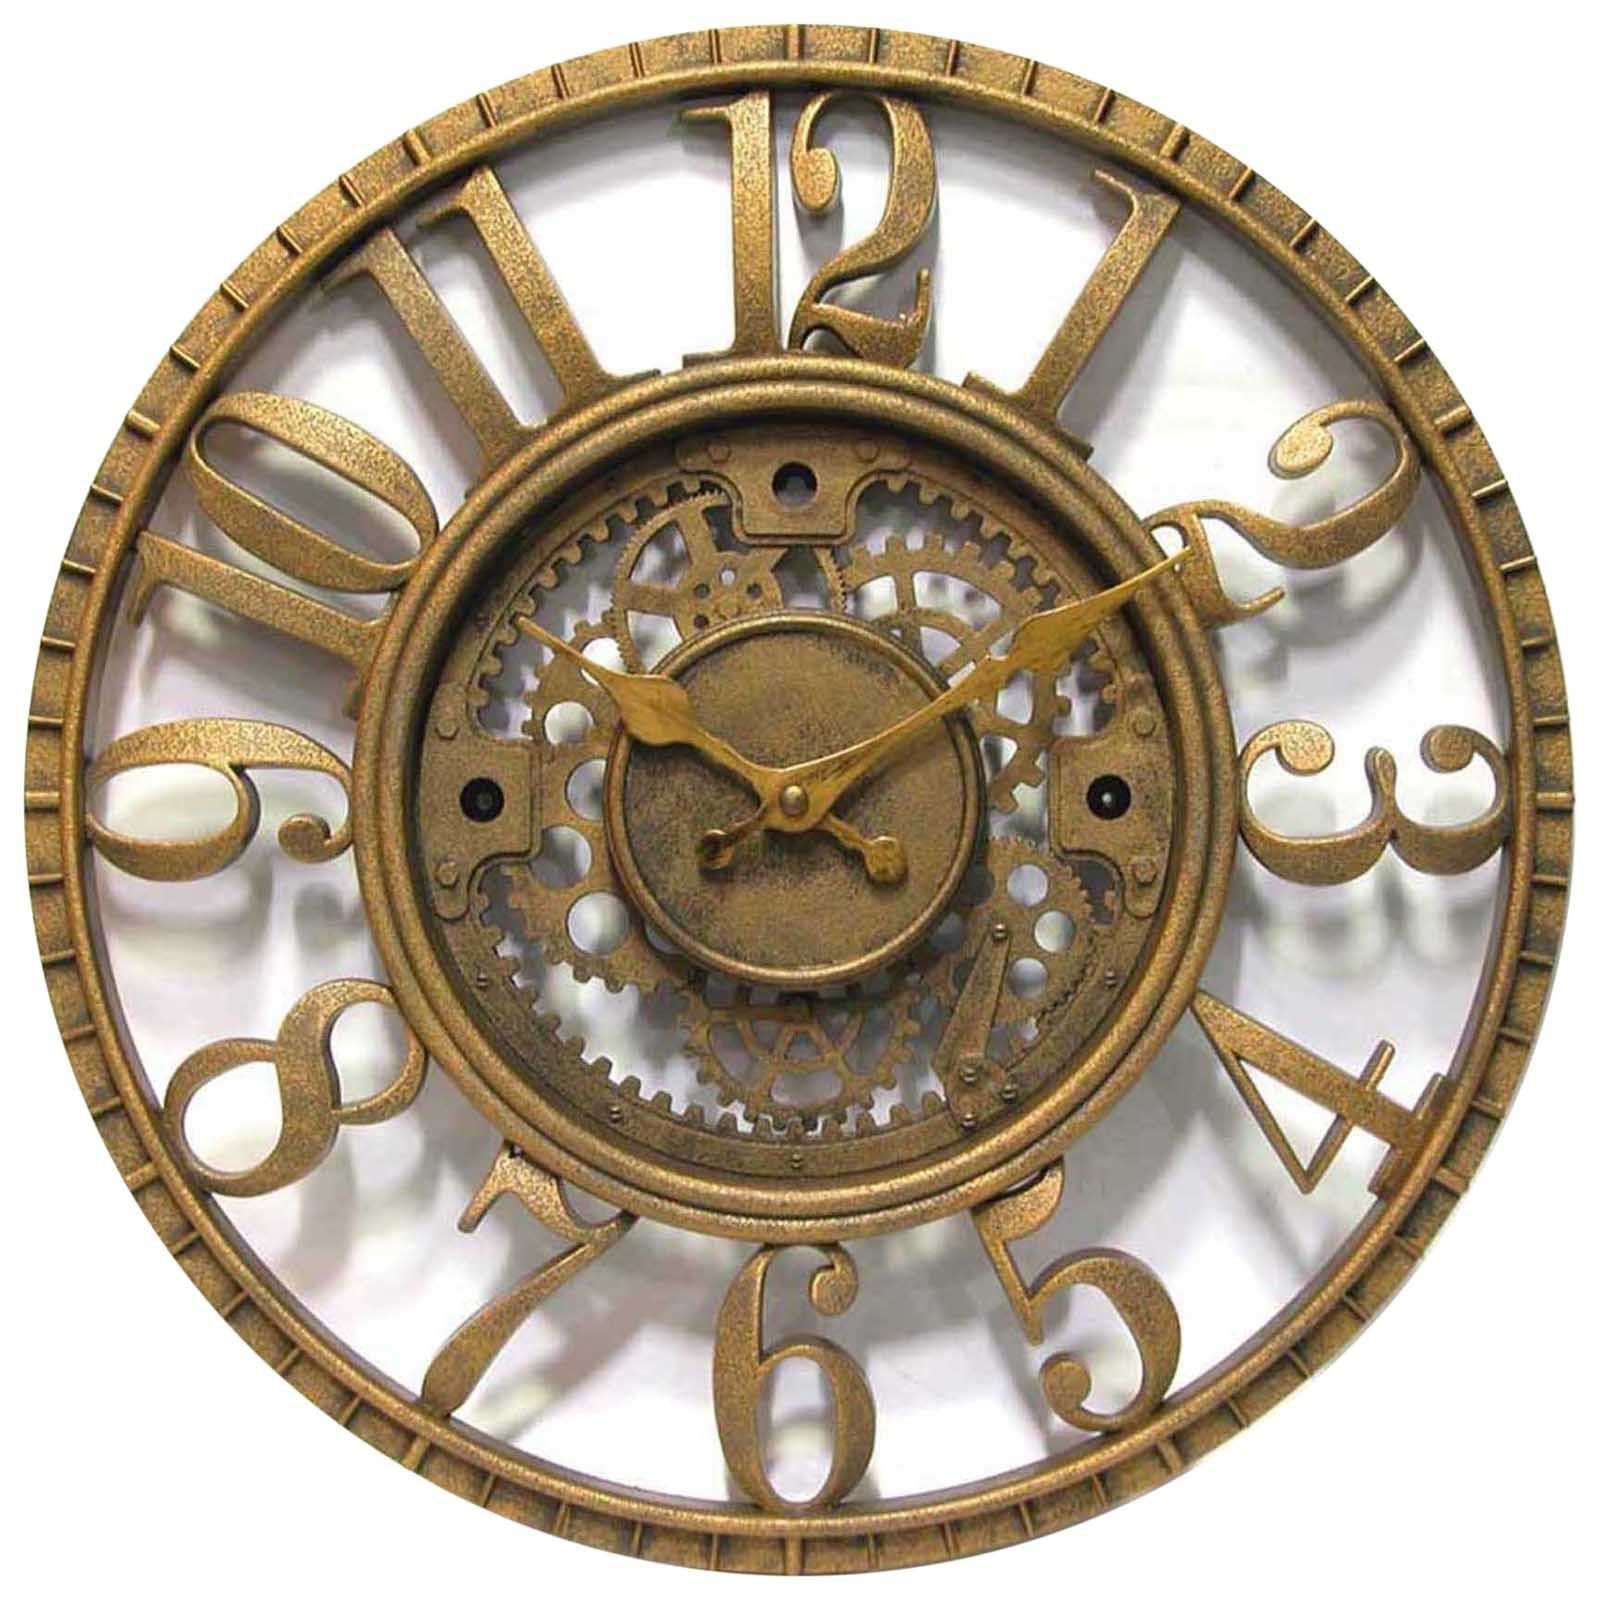 Gears wall clock time open dial gold finish office home decor gears wall clock time open dial gold finish office home decor antique style amipublicfo Images